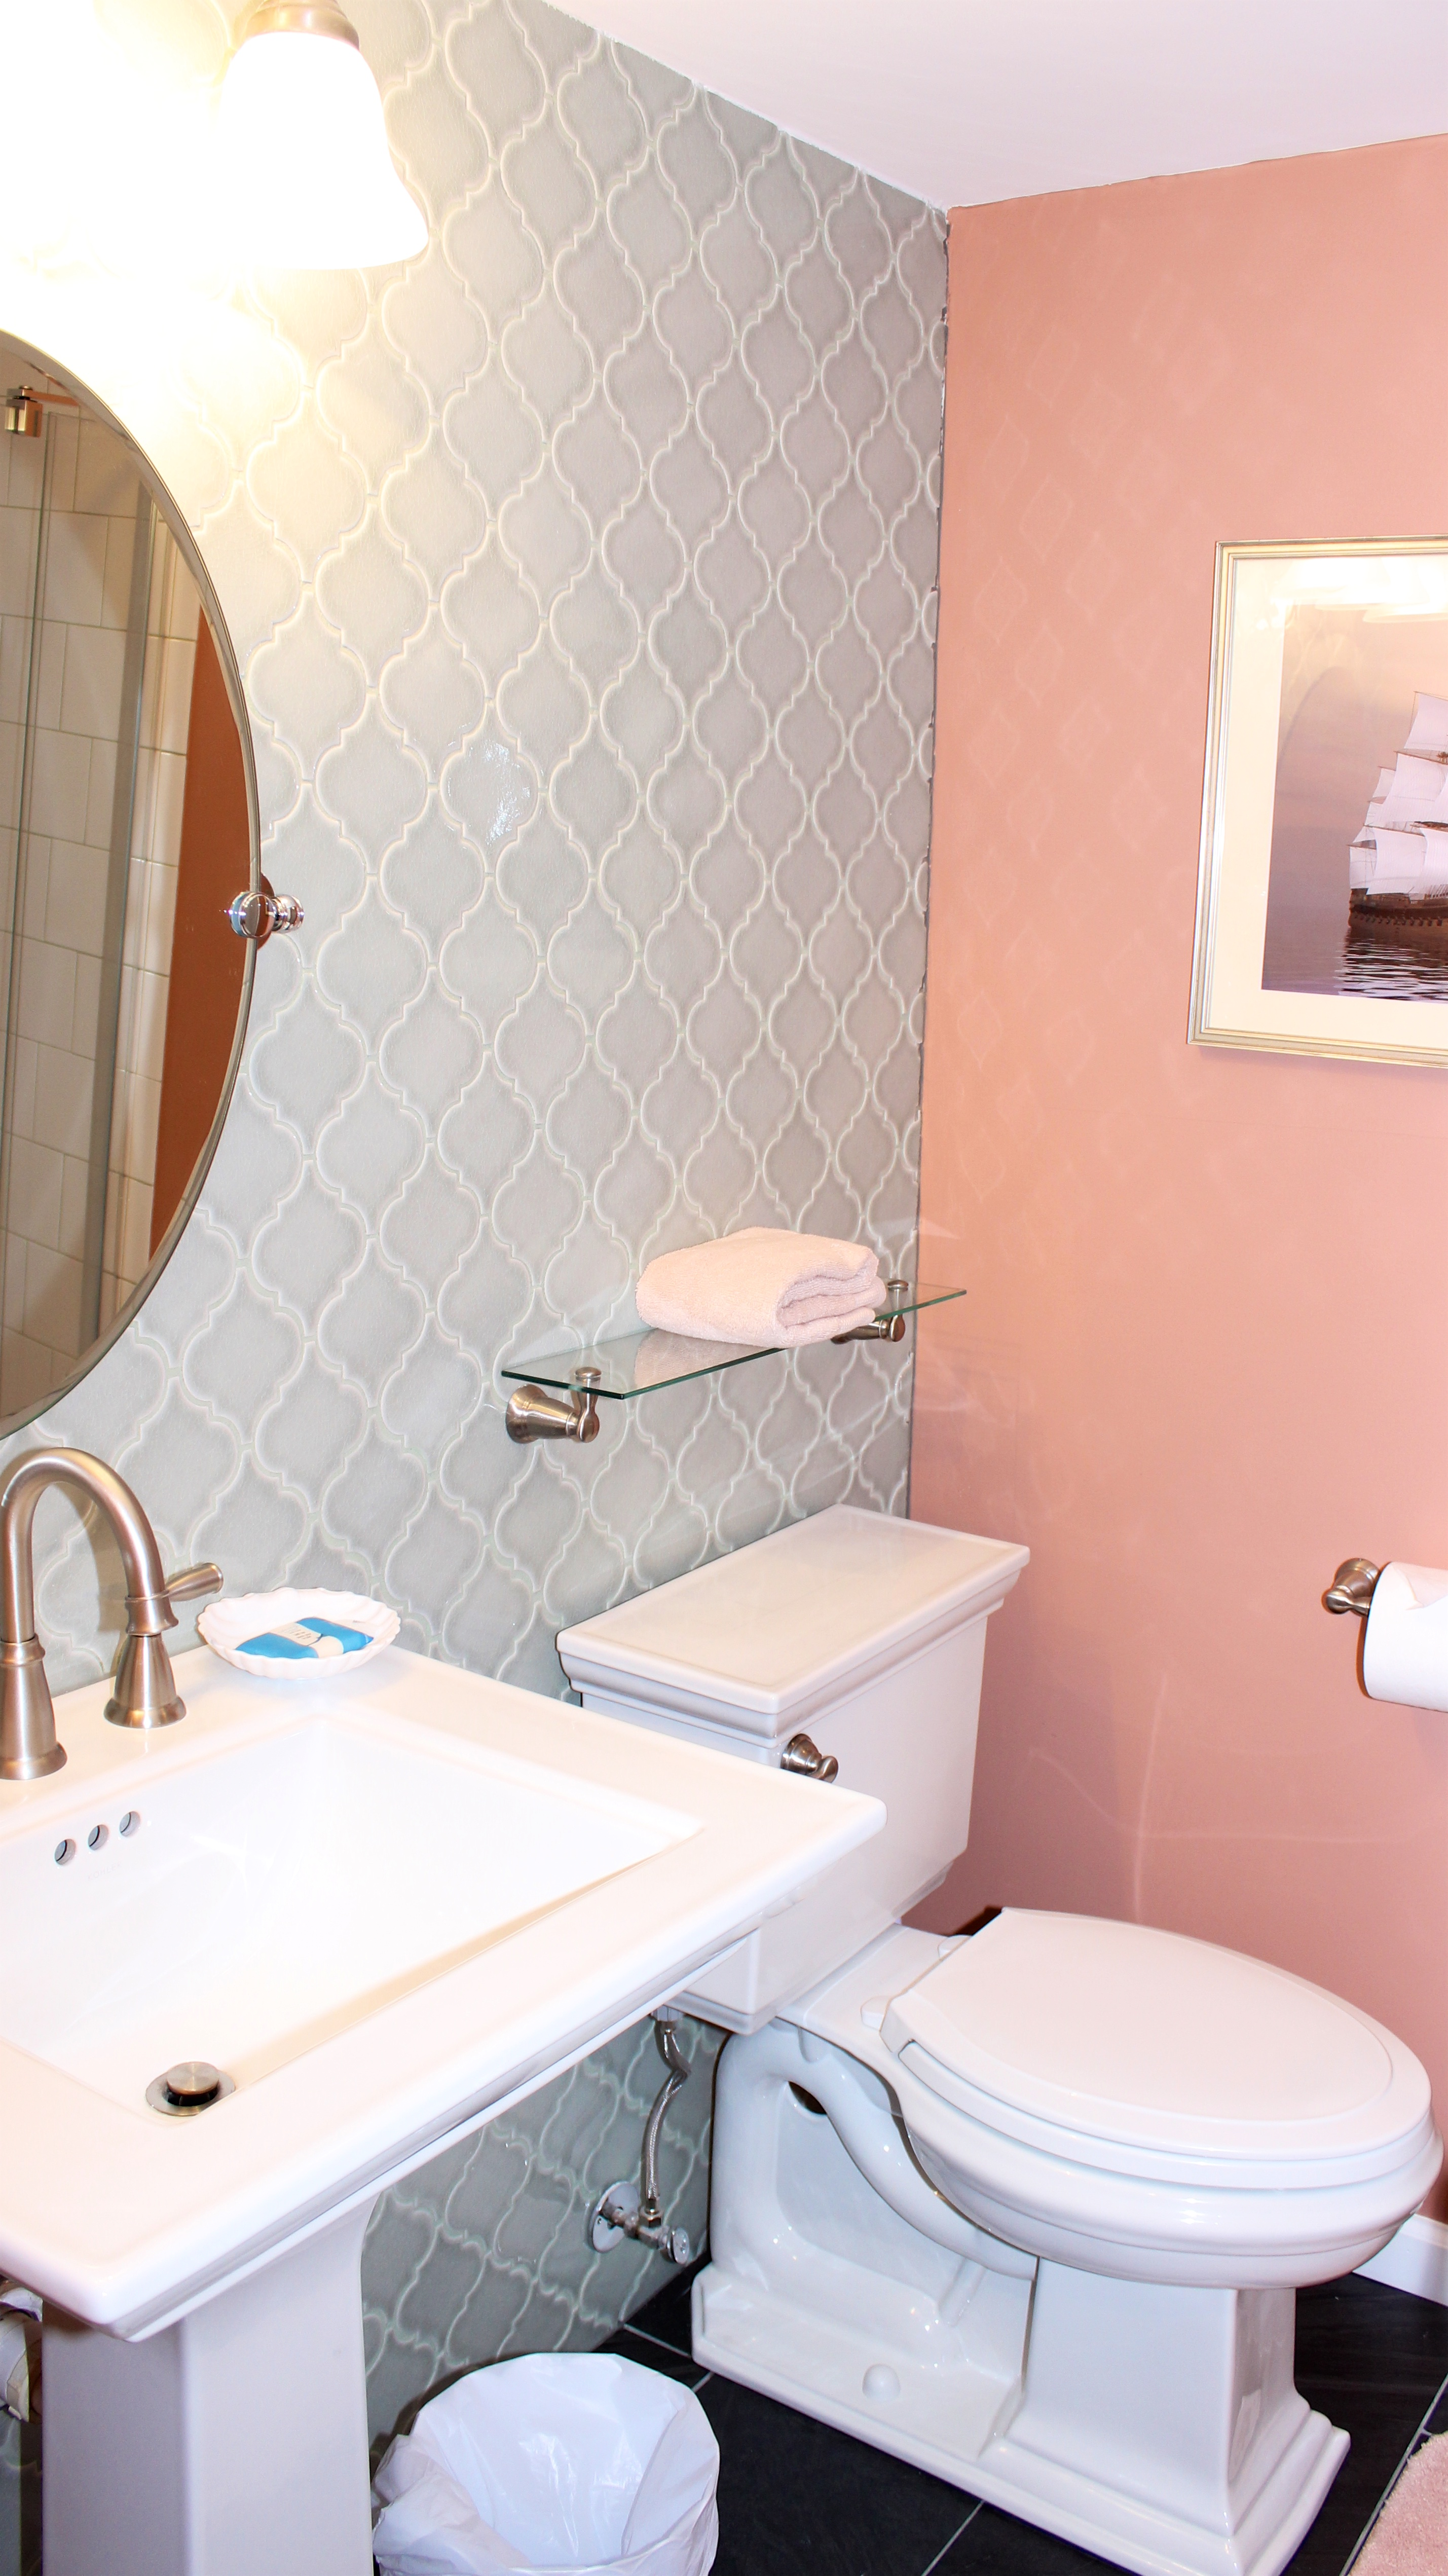 Off the hall is a full bath. It features a tile wall and pedestal sink.